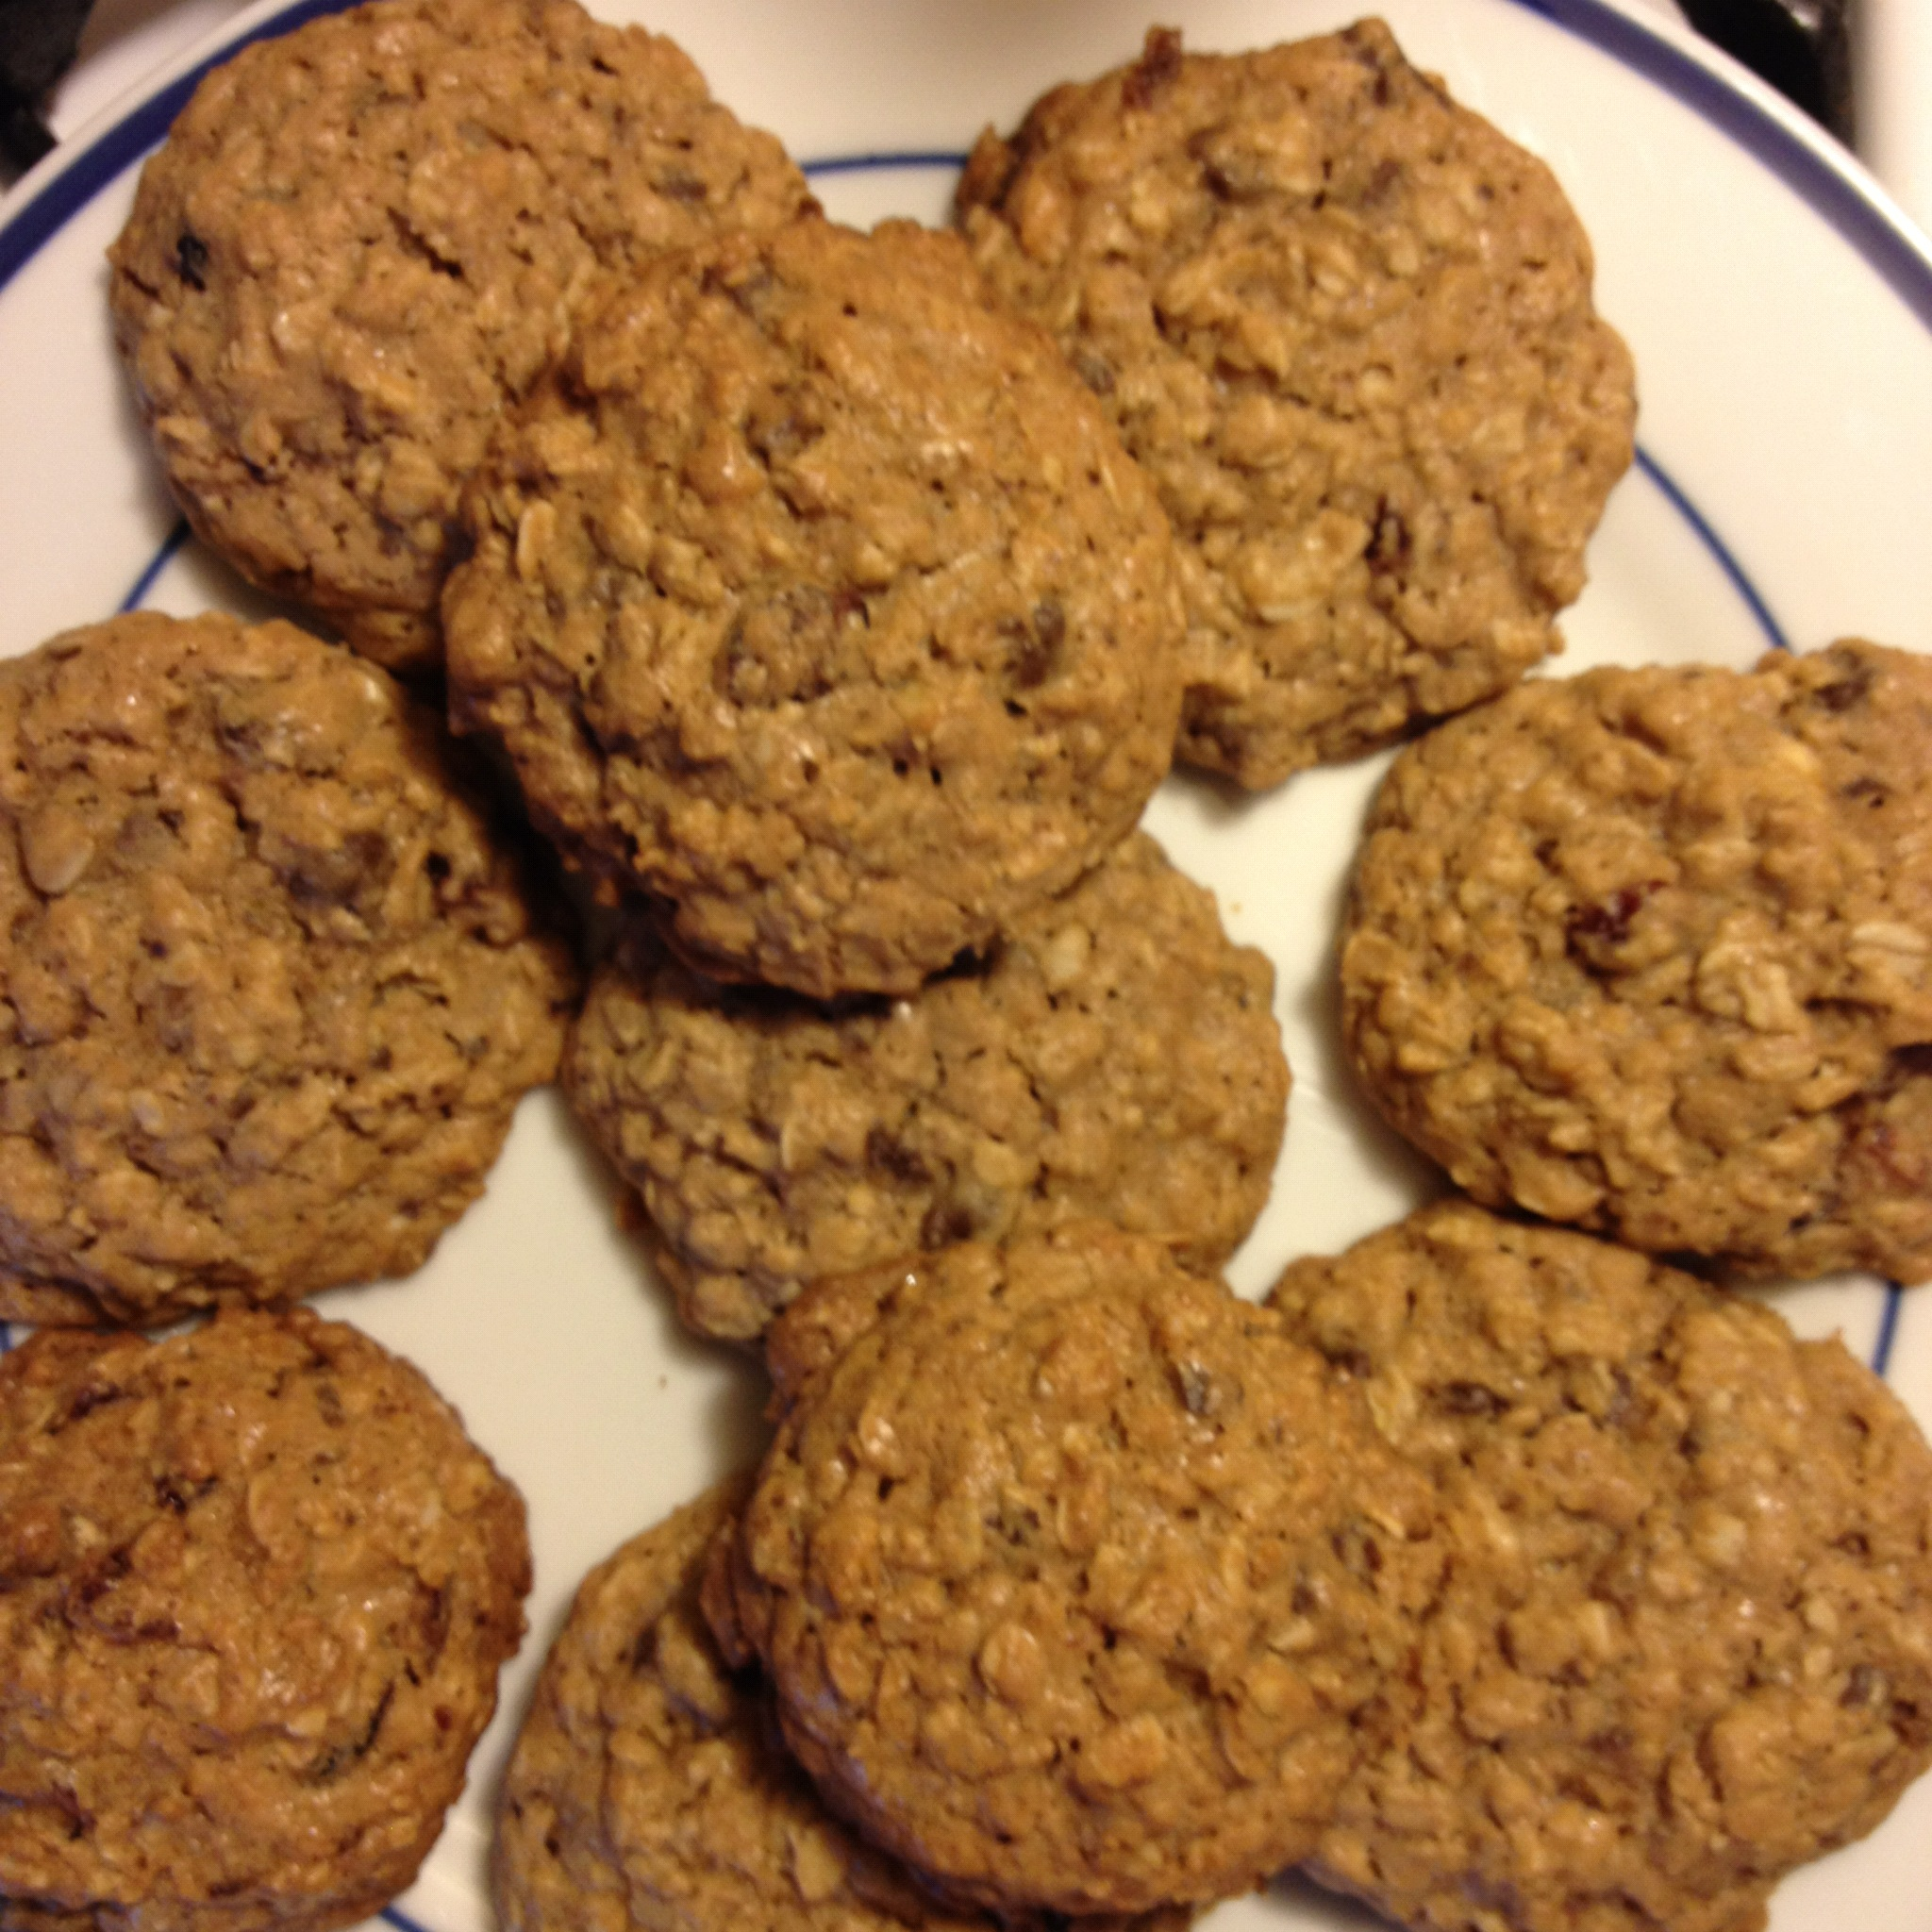 These oatmeal cookies have whole wheat flour, chocolate chips and dried fruit. They're a tasty alternative to granola bars or trail mix.